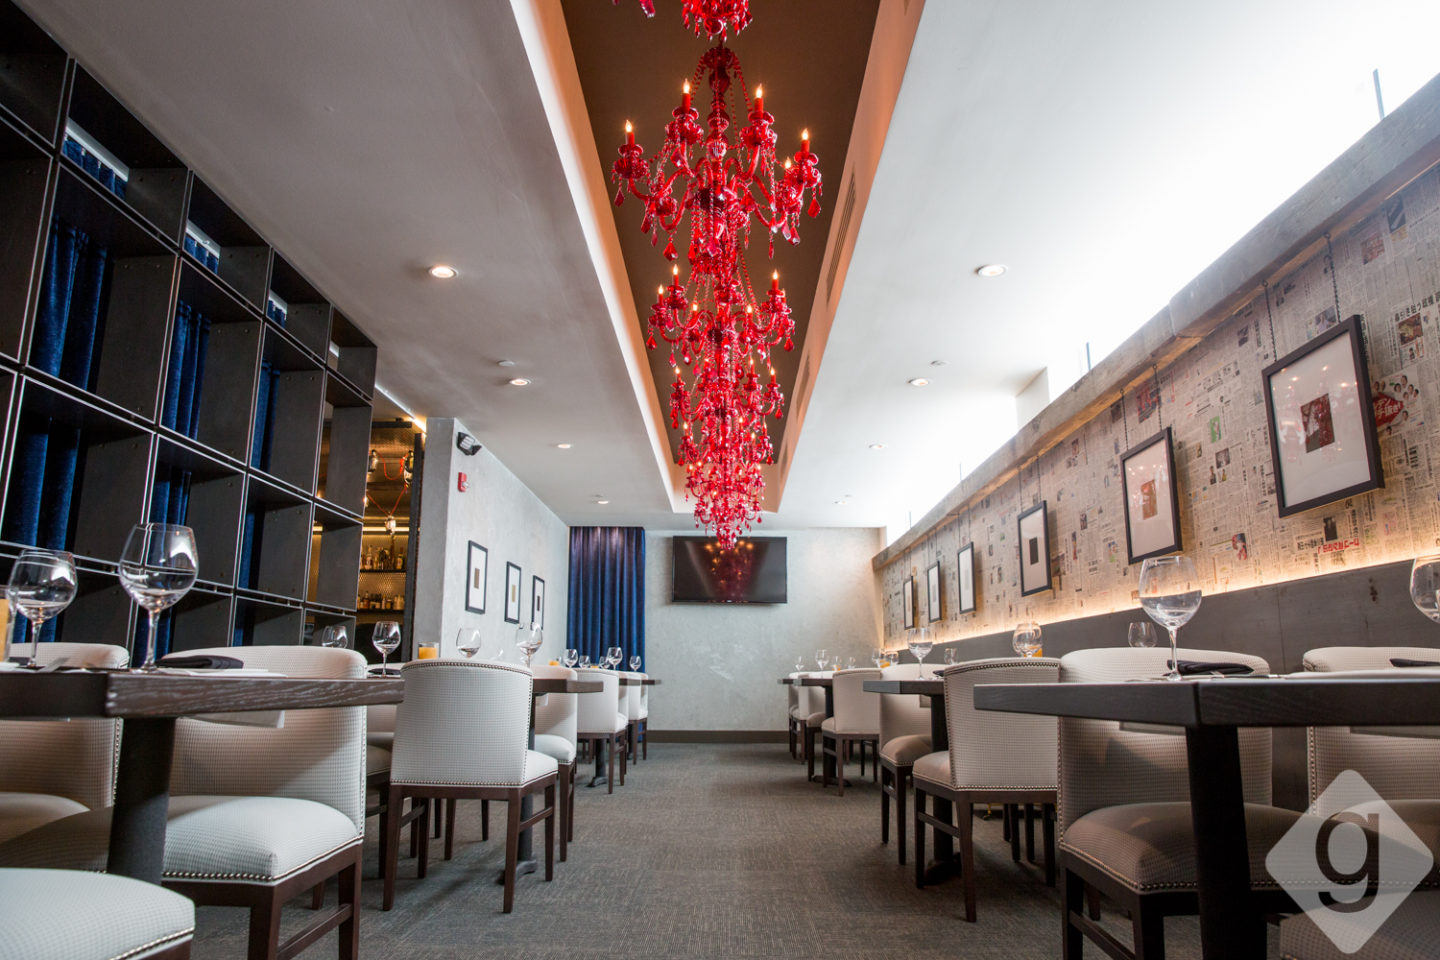 A look inside kayne primes expansion nashville guru the chandelier room is a medium sized room for up to 32 seated guests highlights include dazzling red chandeliers natural light and creative wall art arubaitofo Image collections